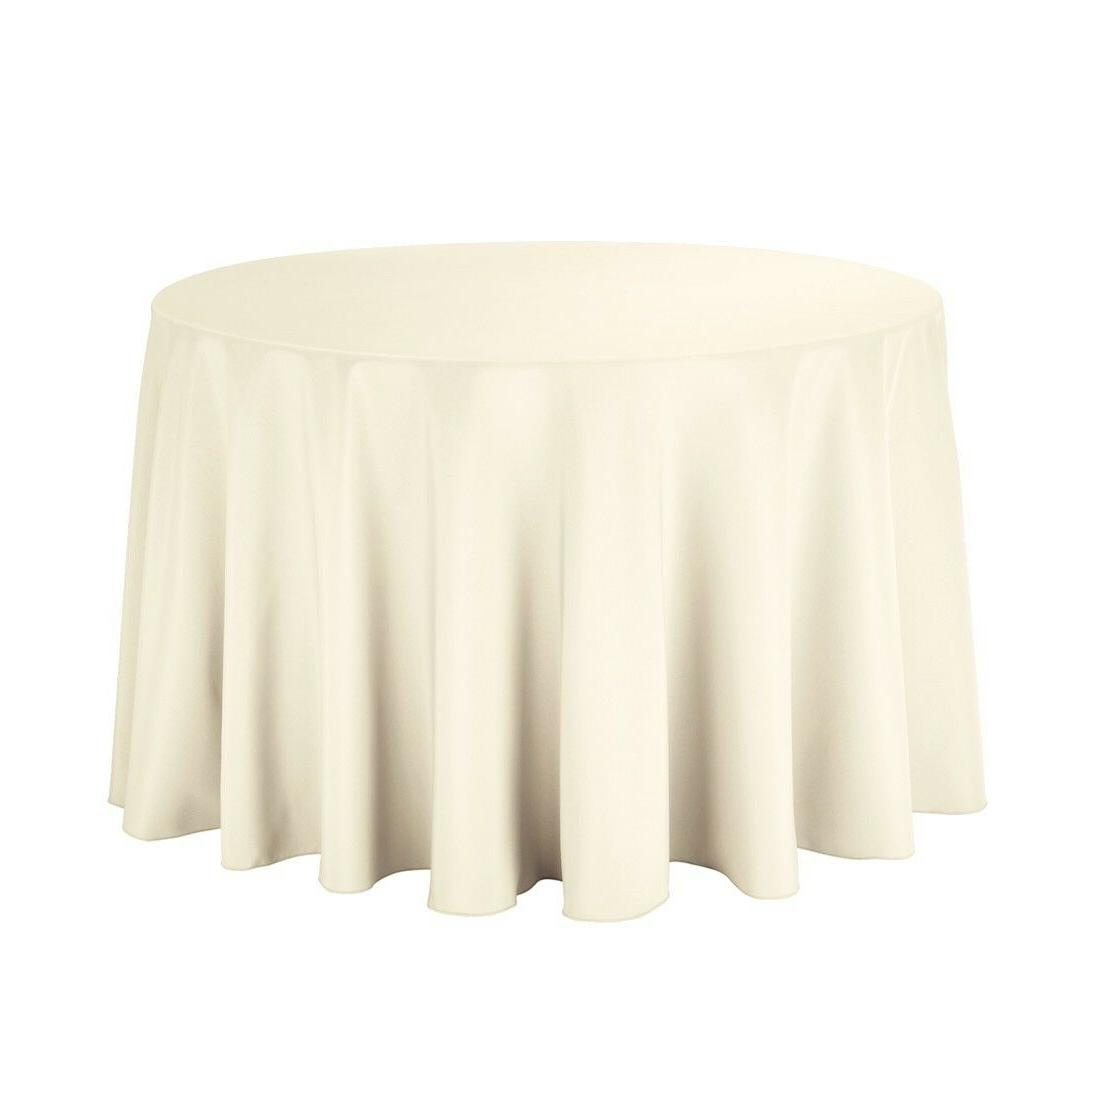 Round Ivory Polyester Table Cloth Table Cover for Party Wedd